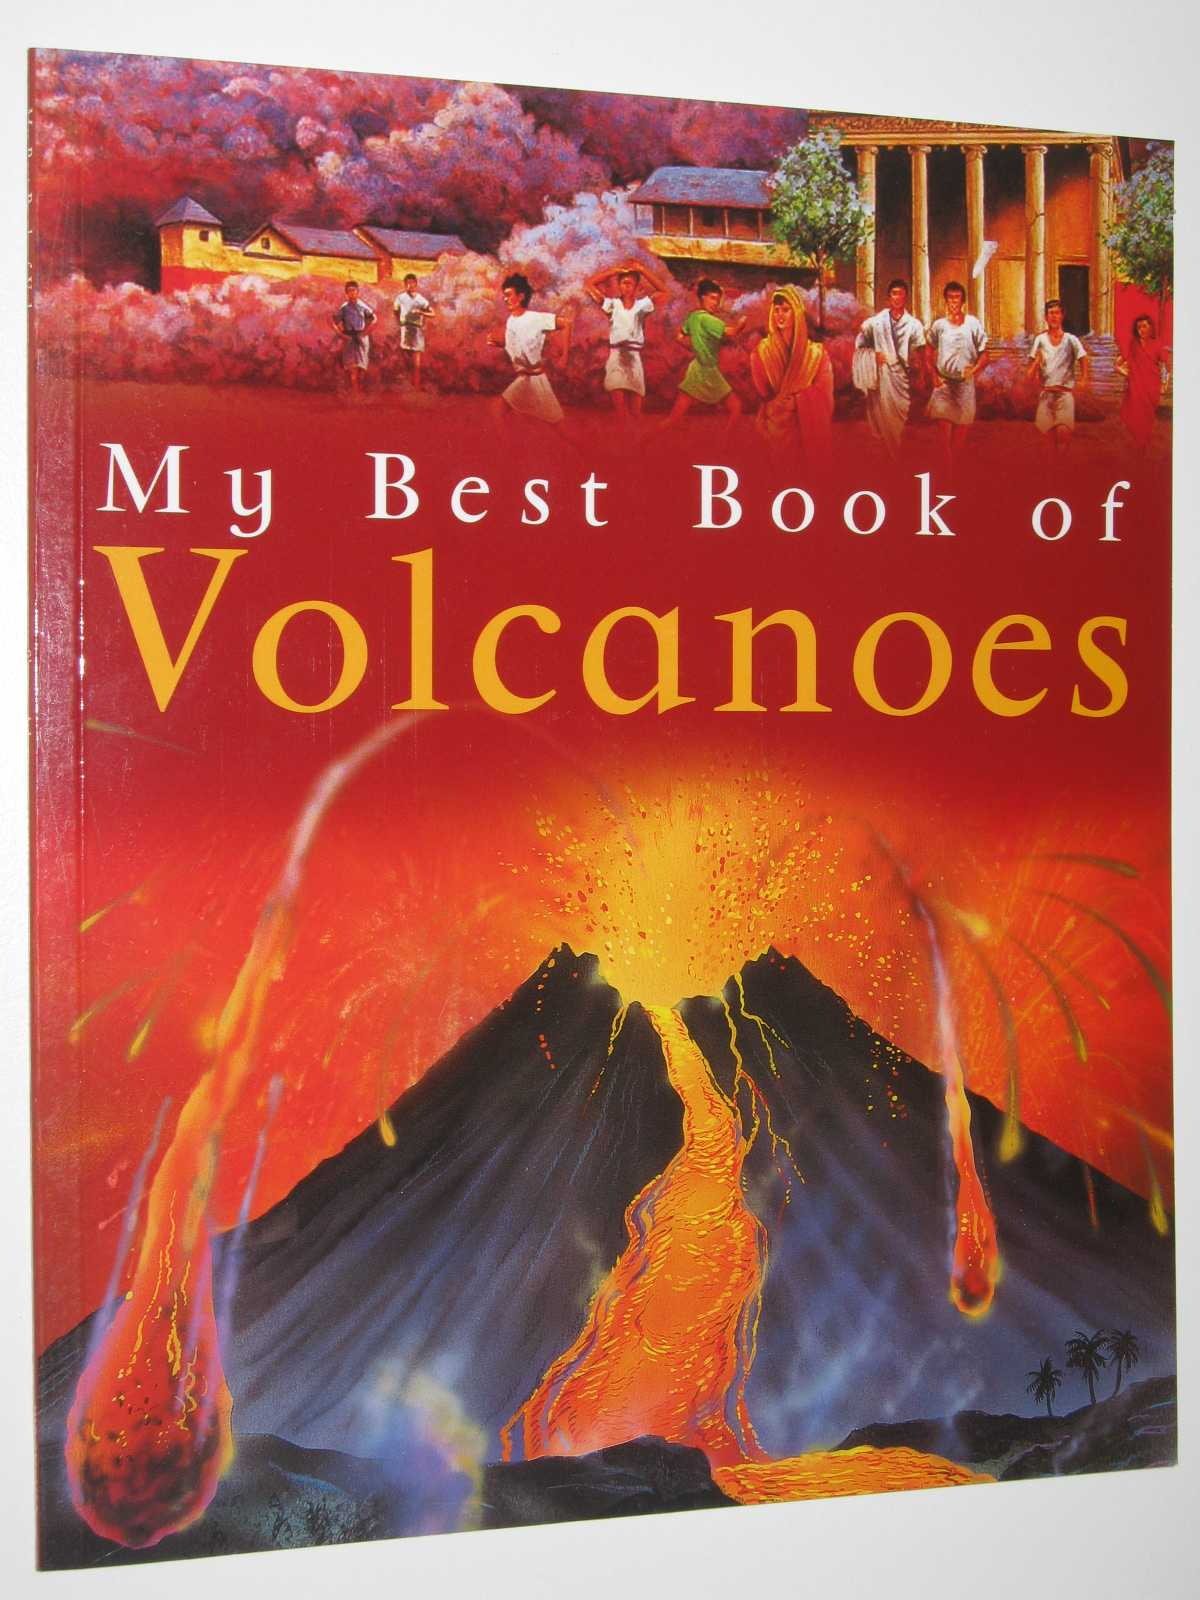 My Best Book of Volcanoes, Adams,Simon